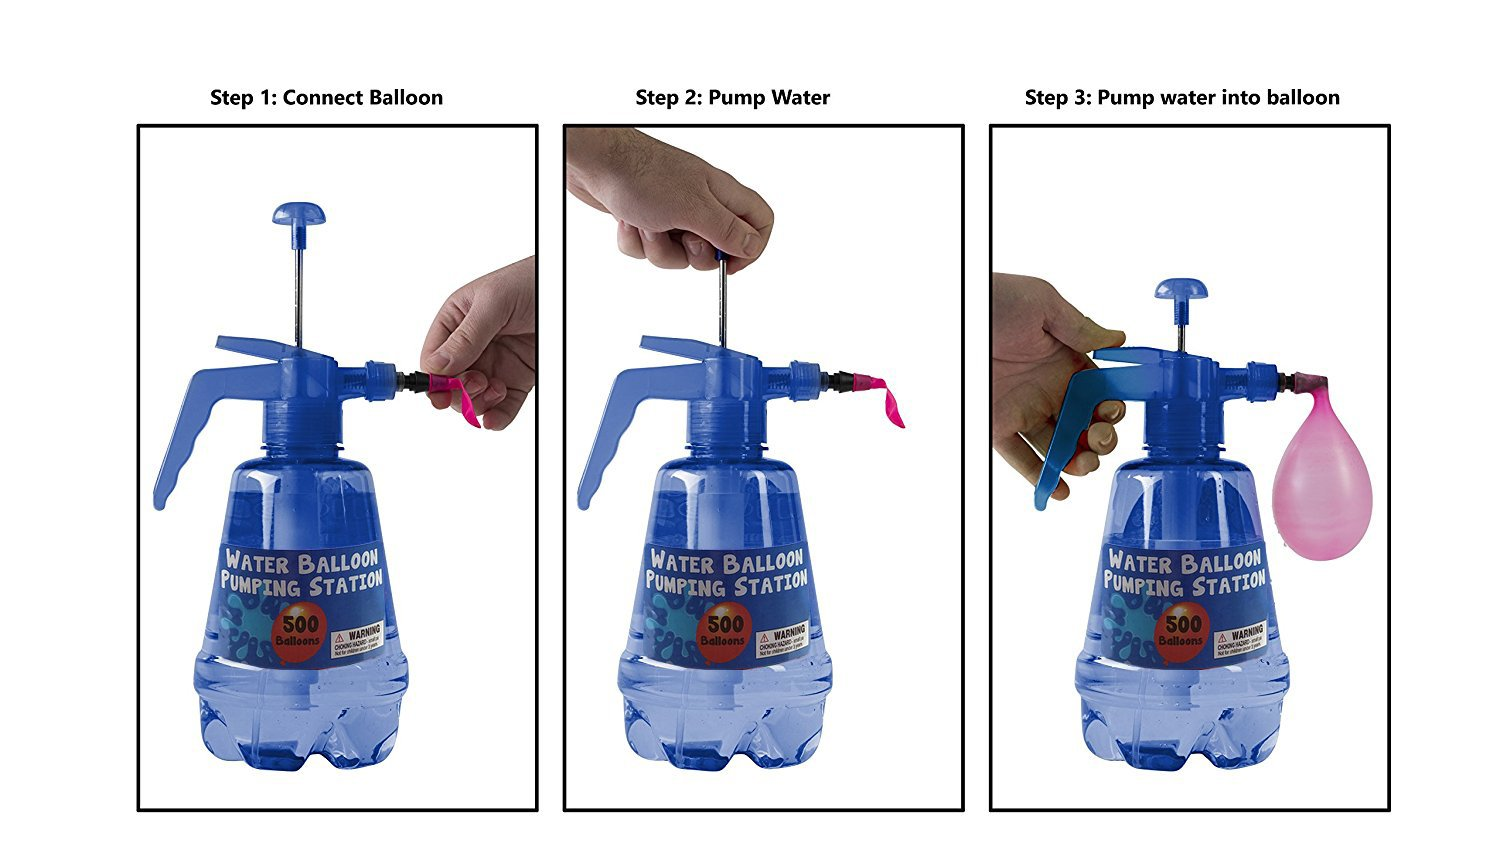 amazon com water balloon pumping station with 500 water balloons